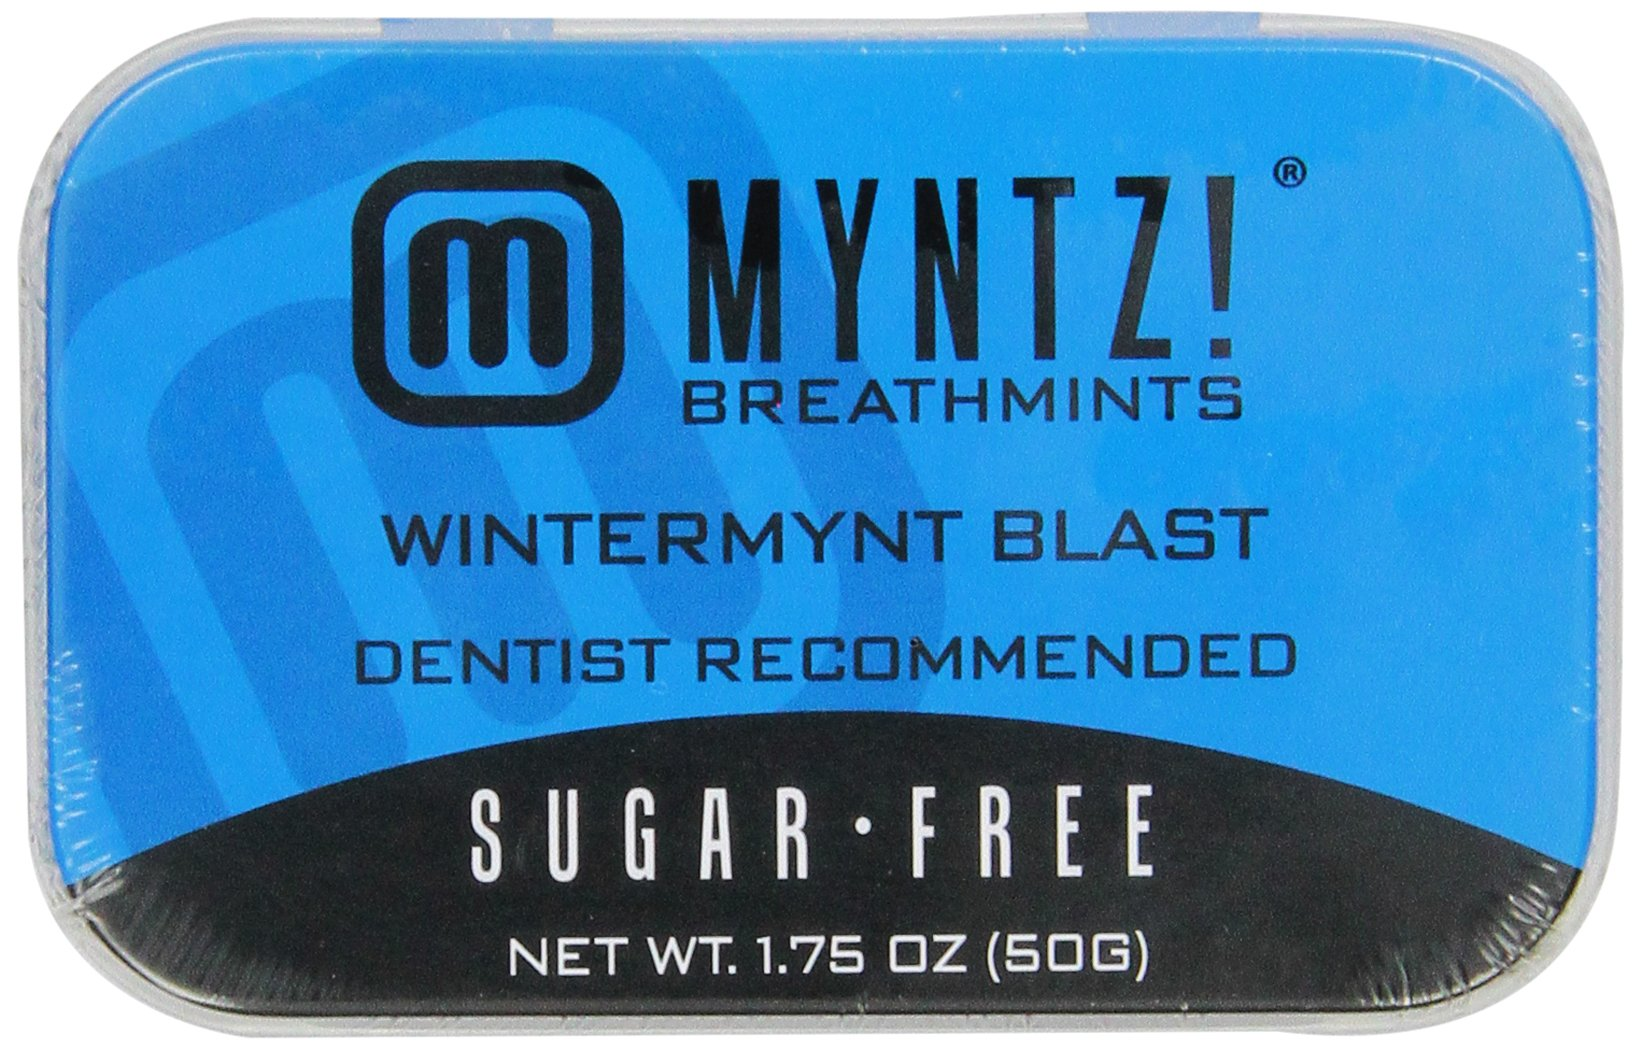 Myntz Wintermynt Blast Breathmints,Sugar Free 1.75-Ounce Containers (Pack of 12) by Myntz